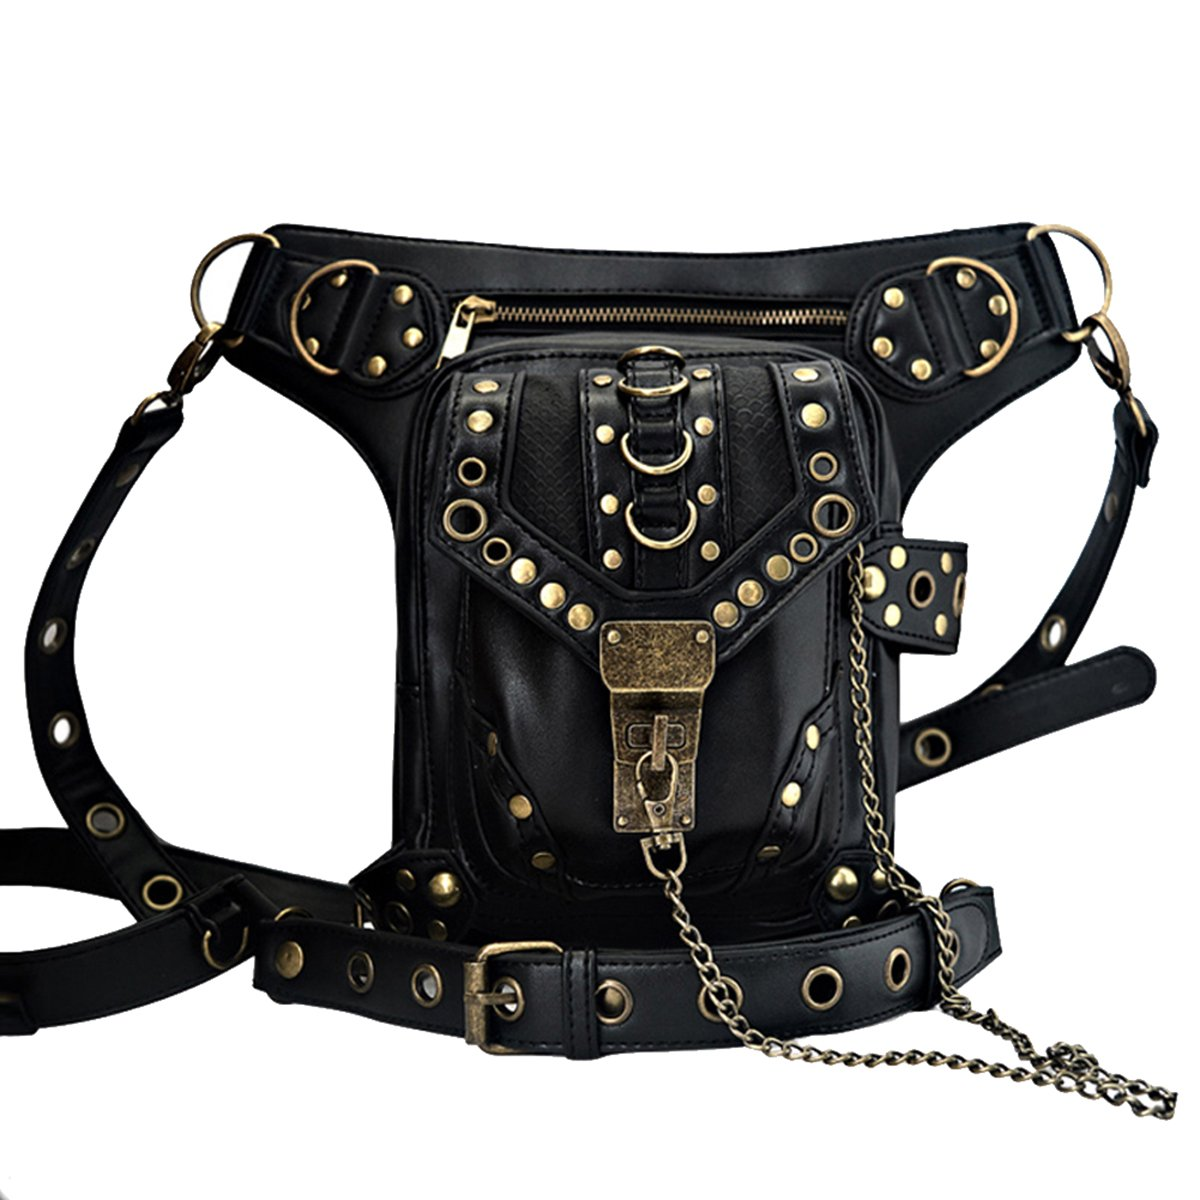 Vintage Chain Leather Handbag Steampunk Retro Motorcycle Backpack Shoulder Waist Bag Mokaqi